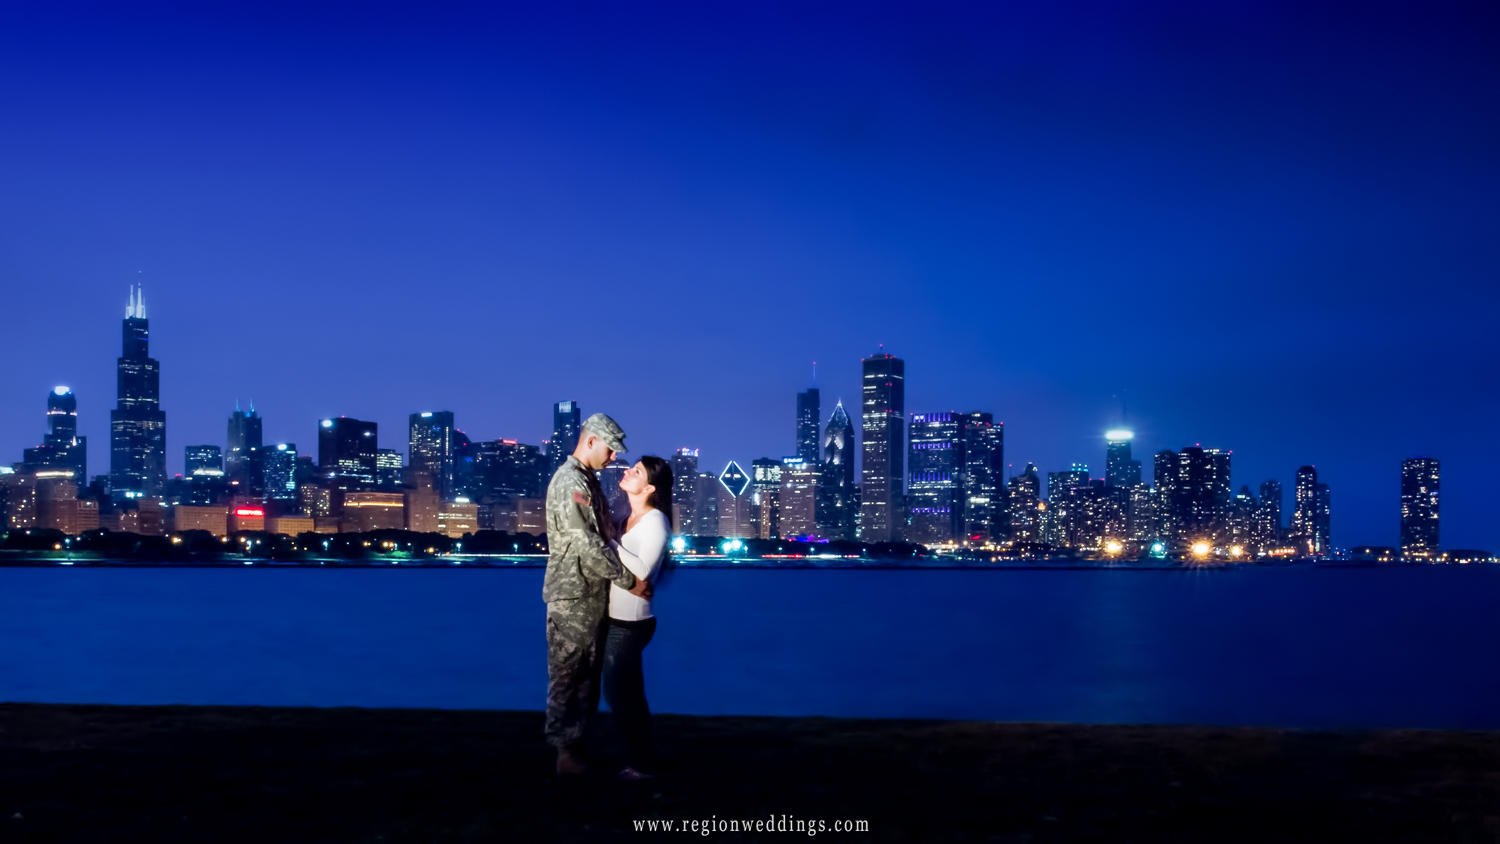 A soldier and his fiancé embrace in front of the Chicago Skyline at night for their engagement photo.